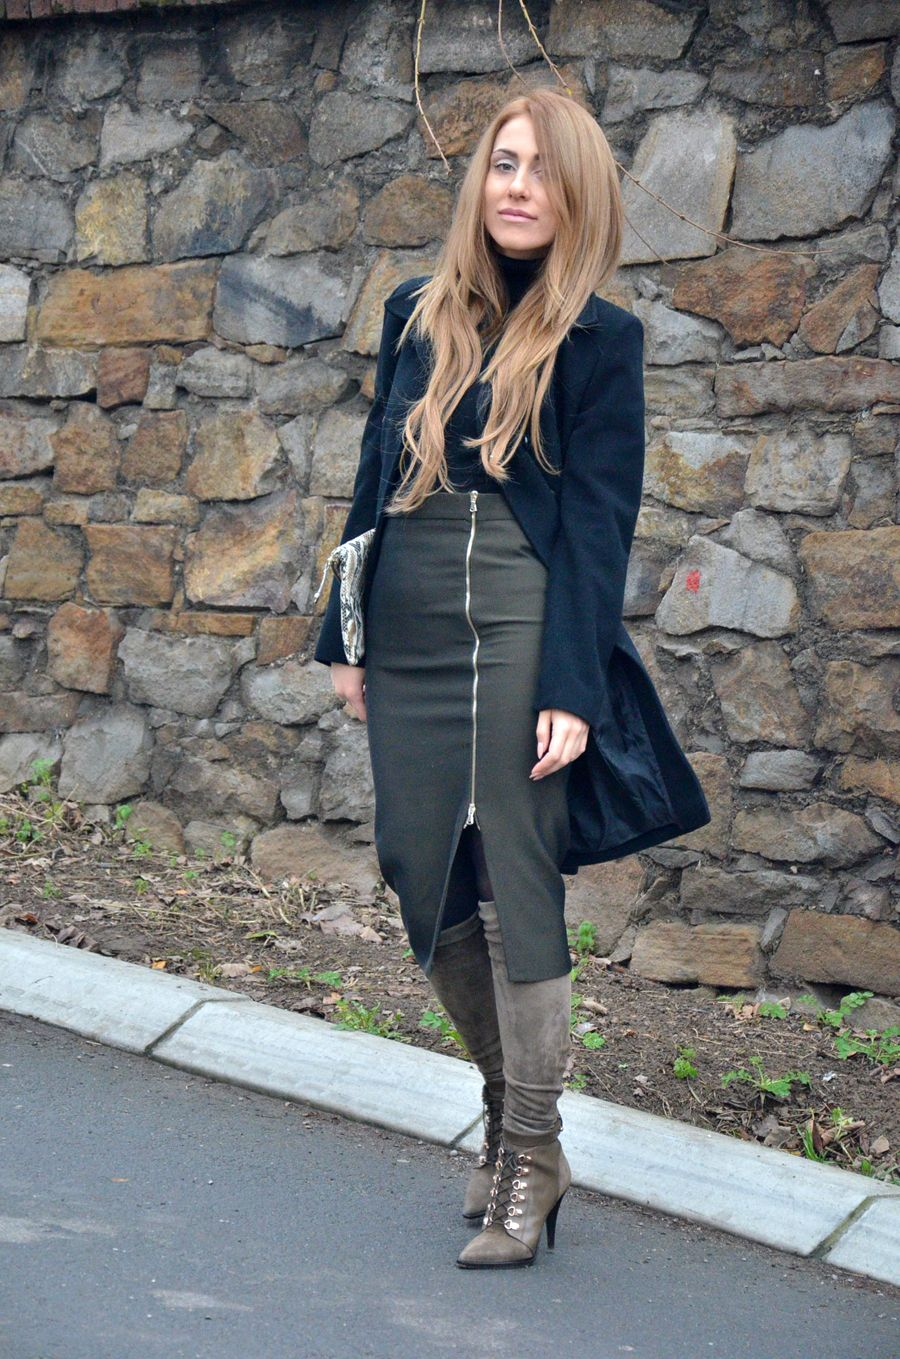 469e5c96f Pencil Skirt, Long Coat and Over the Knee Boots Outfit / Stasha Fashion by  Anastasija Milojevic